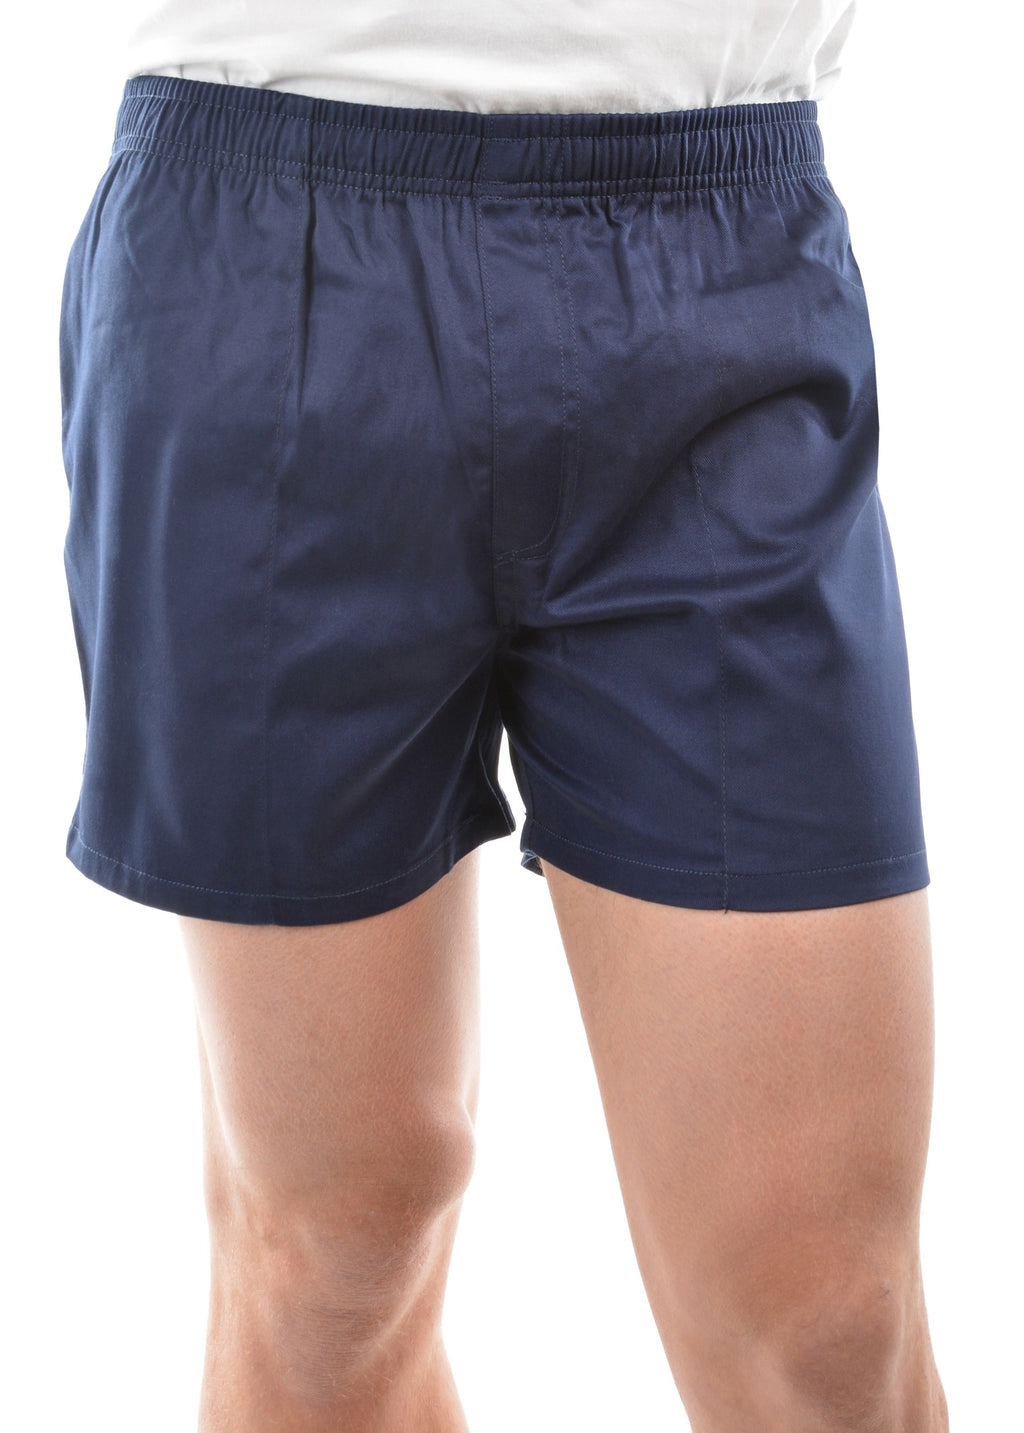 Mens Drill Shorts - Short (Navy or Black)